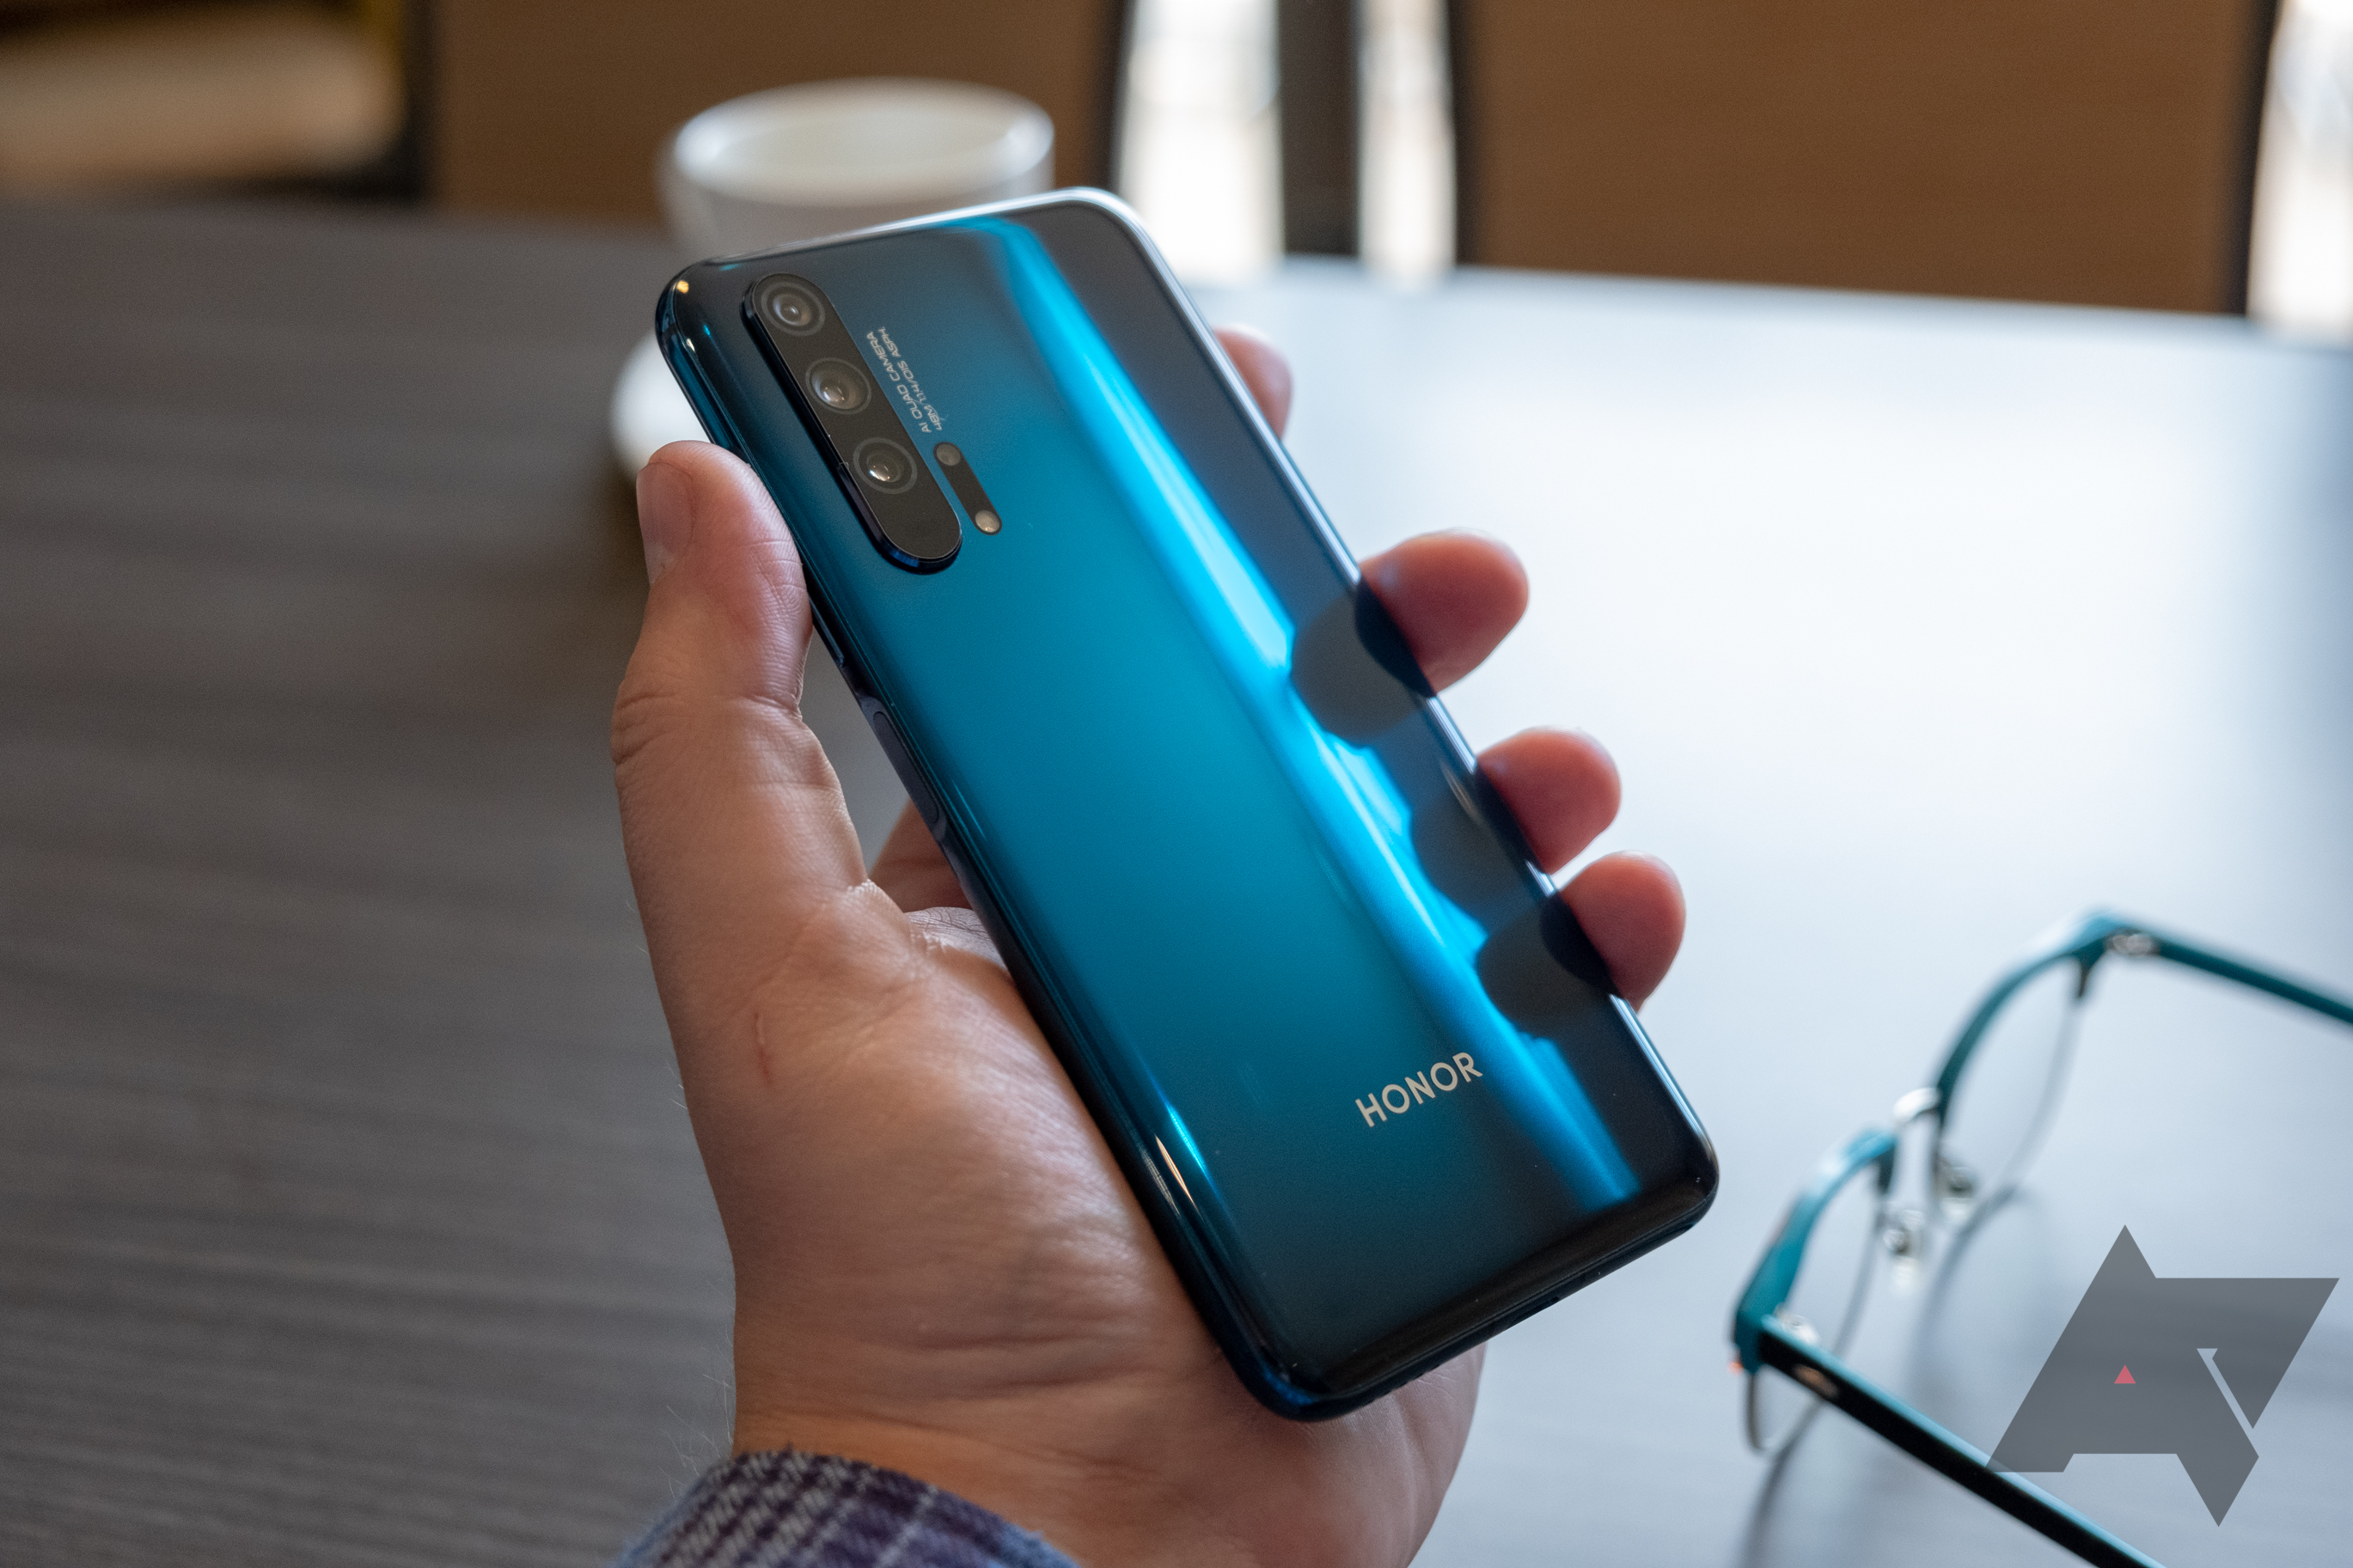 Review: The Honor 20 Pro is a stripped down Huawei P30 Pro — in all the right ways